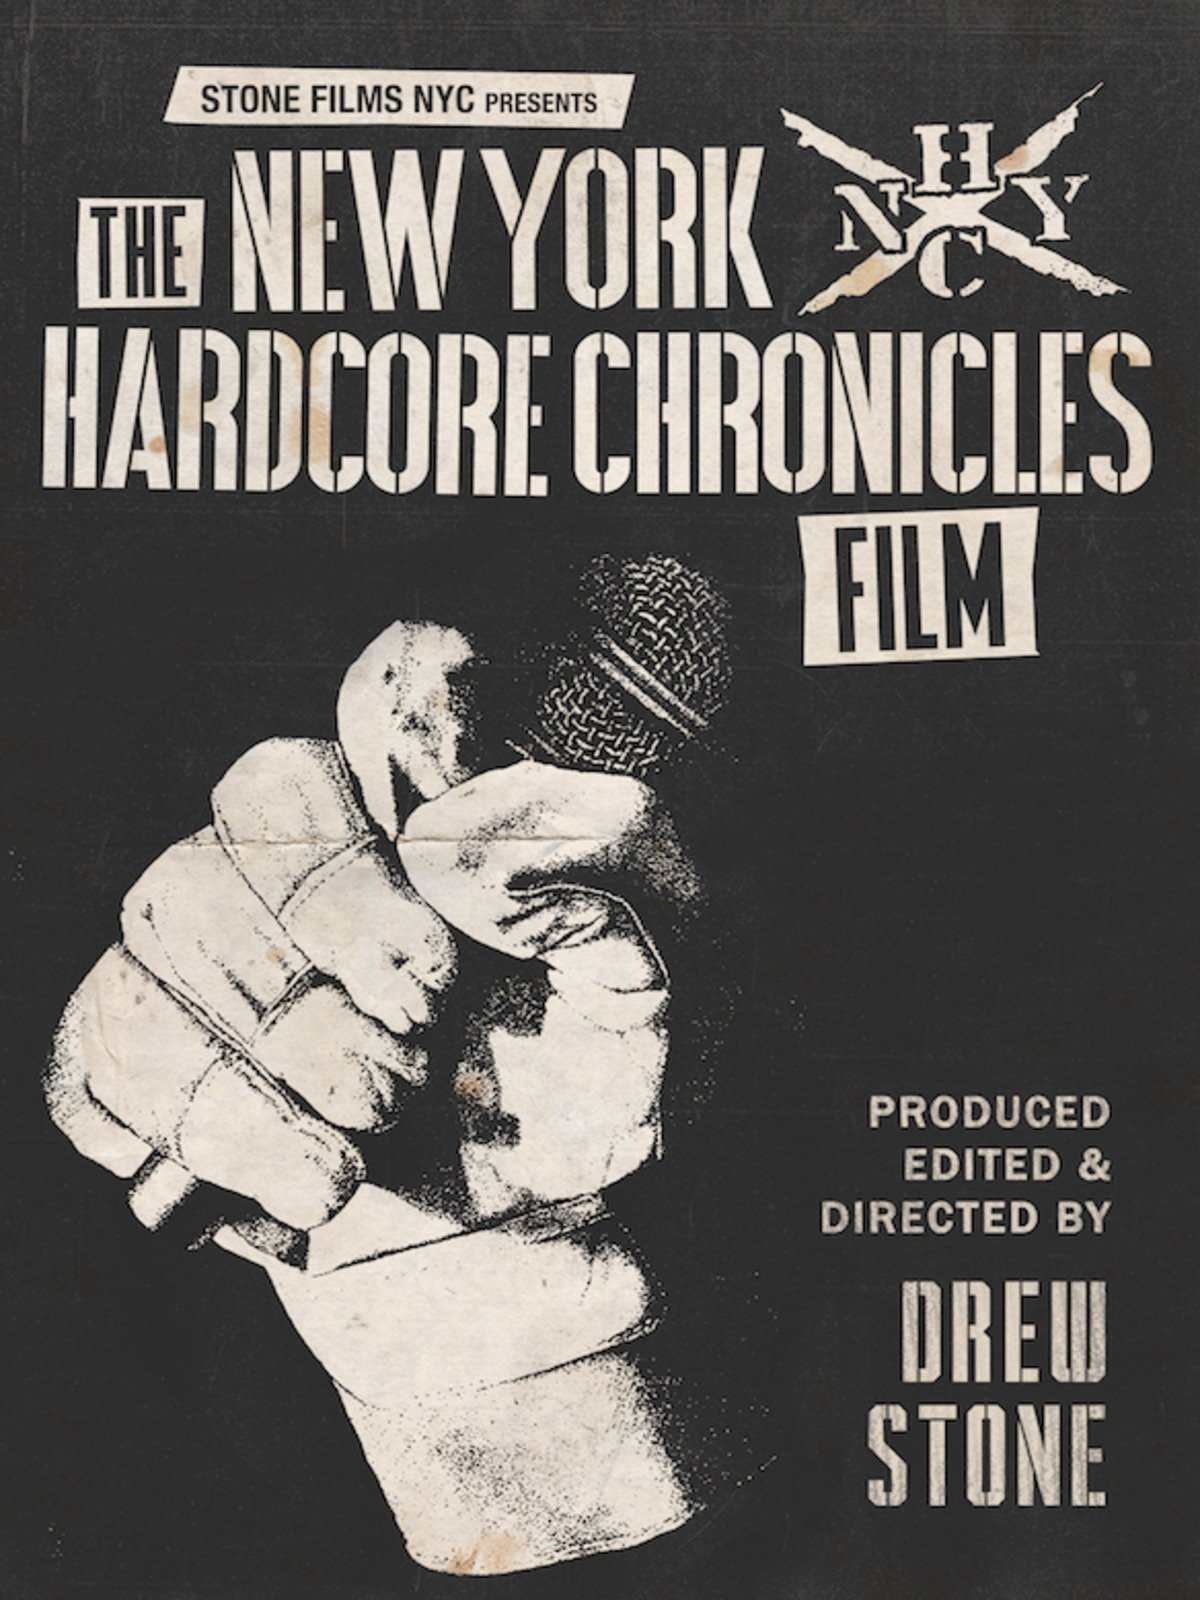 The New York Hardcore Chronicles Film